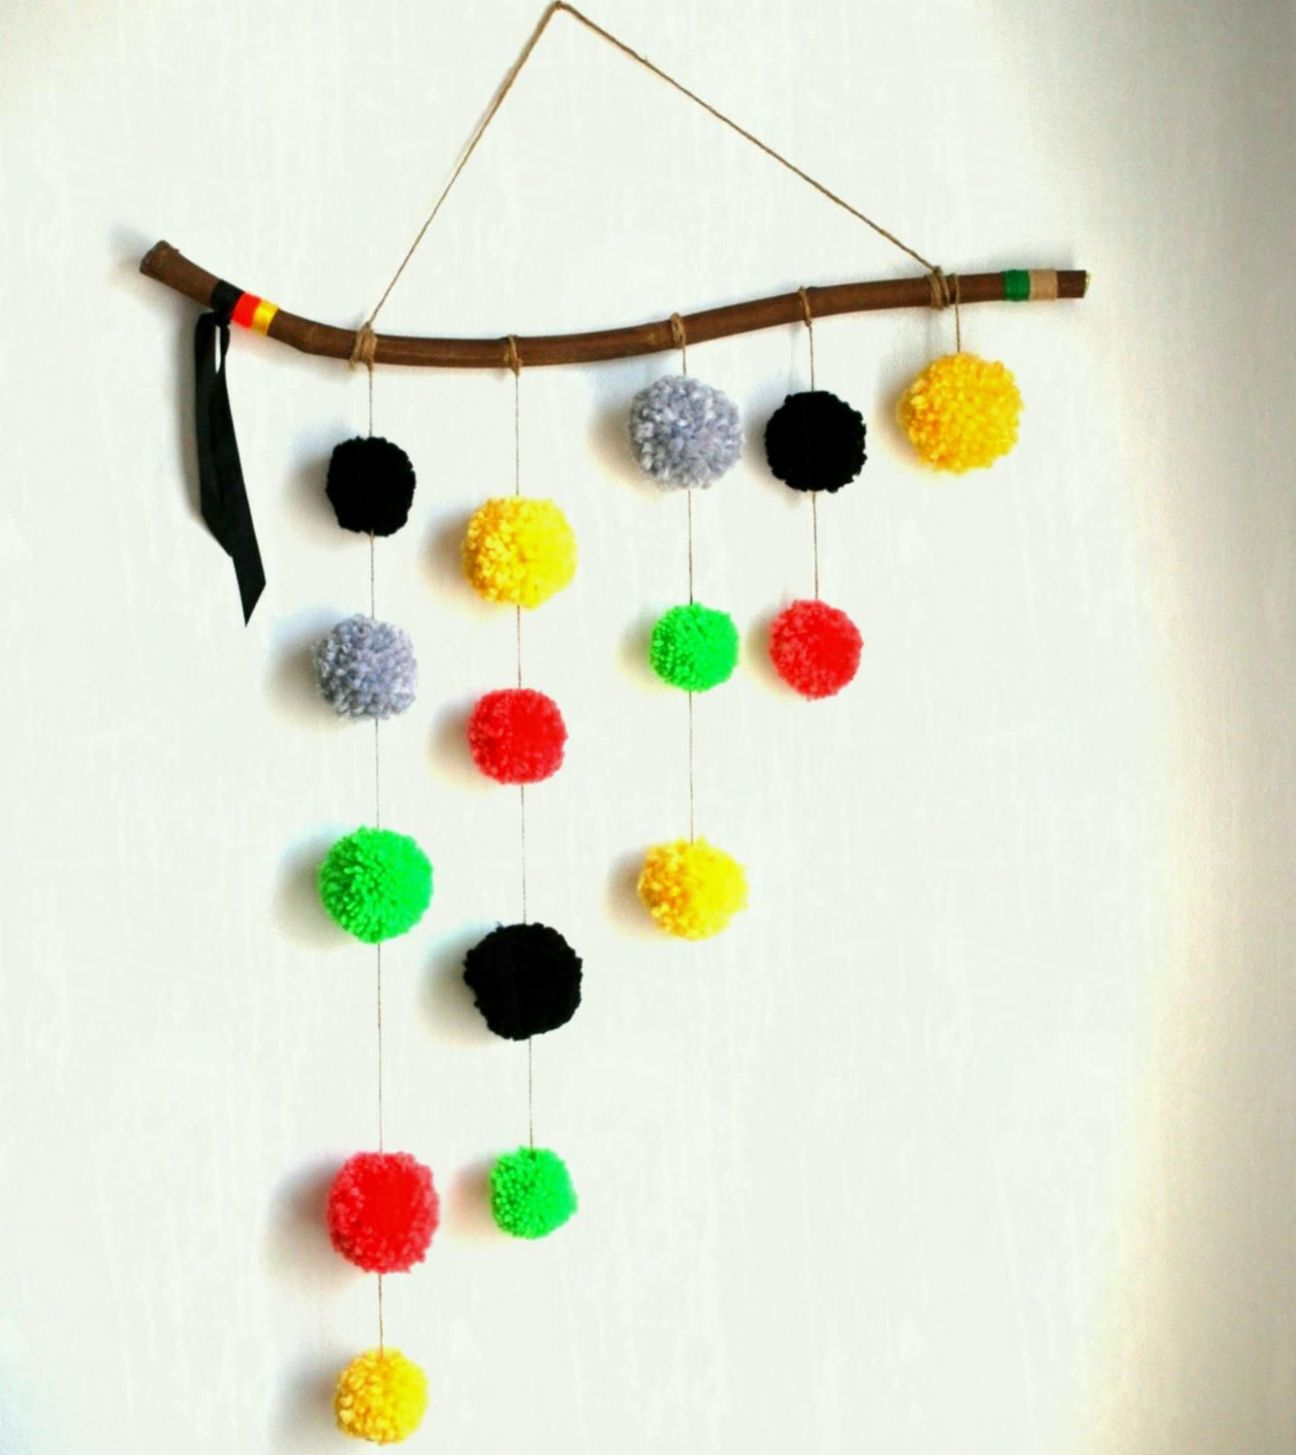 Terrific Wall Hanging Ideas With Waste Material For School ...